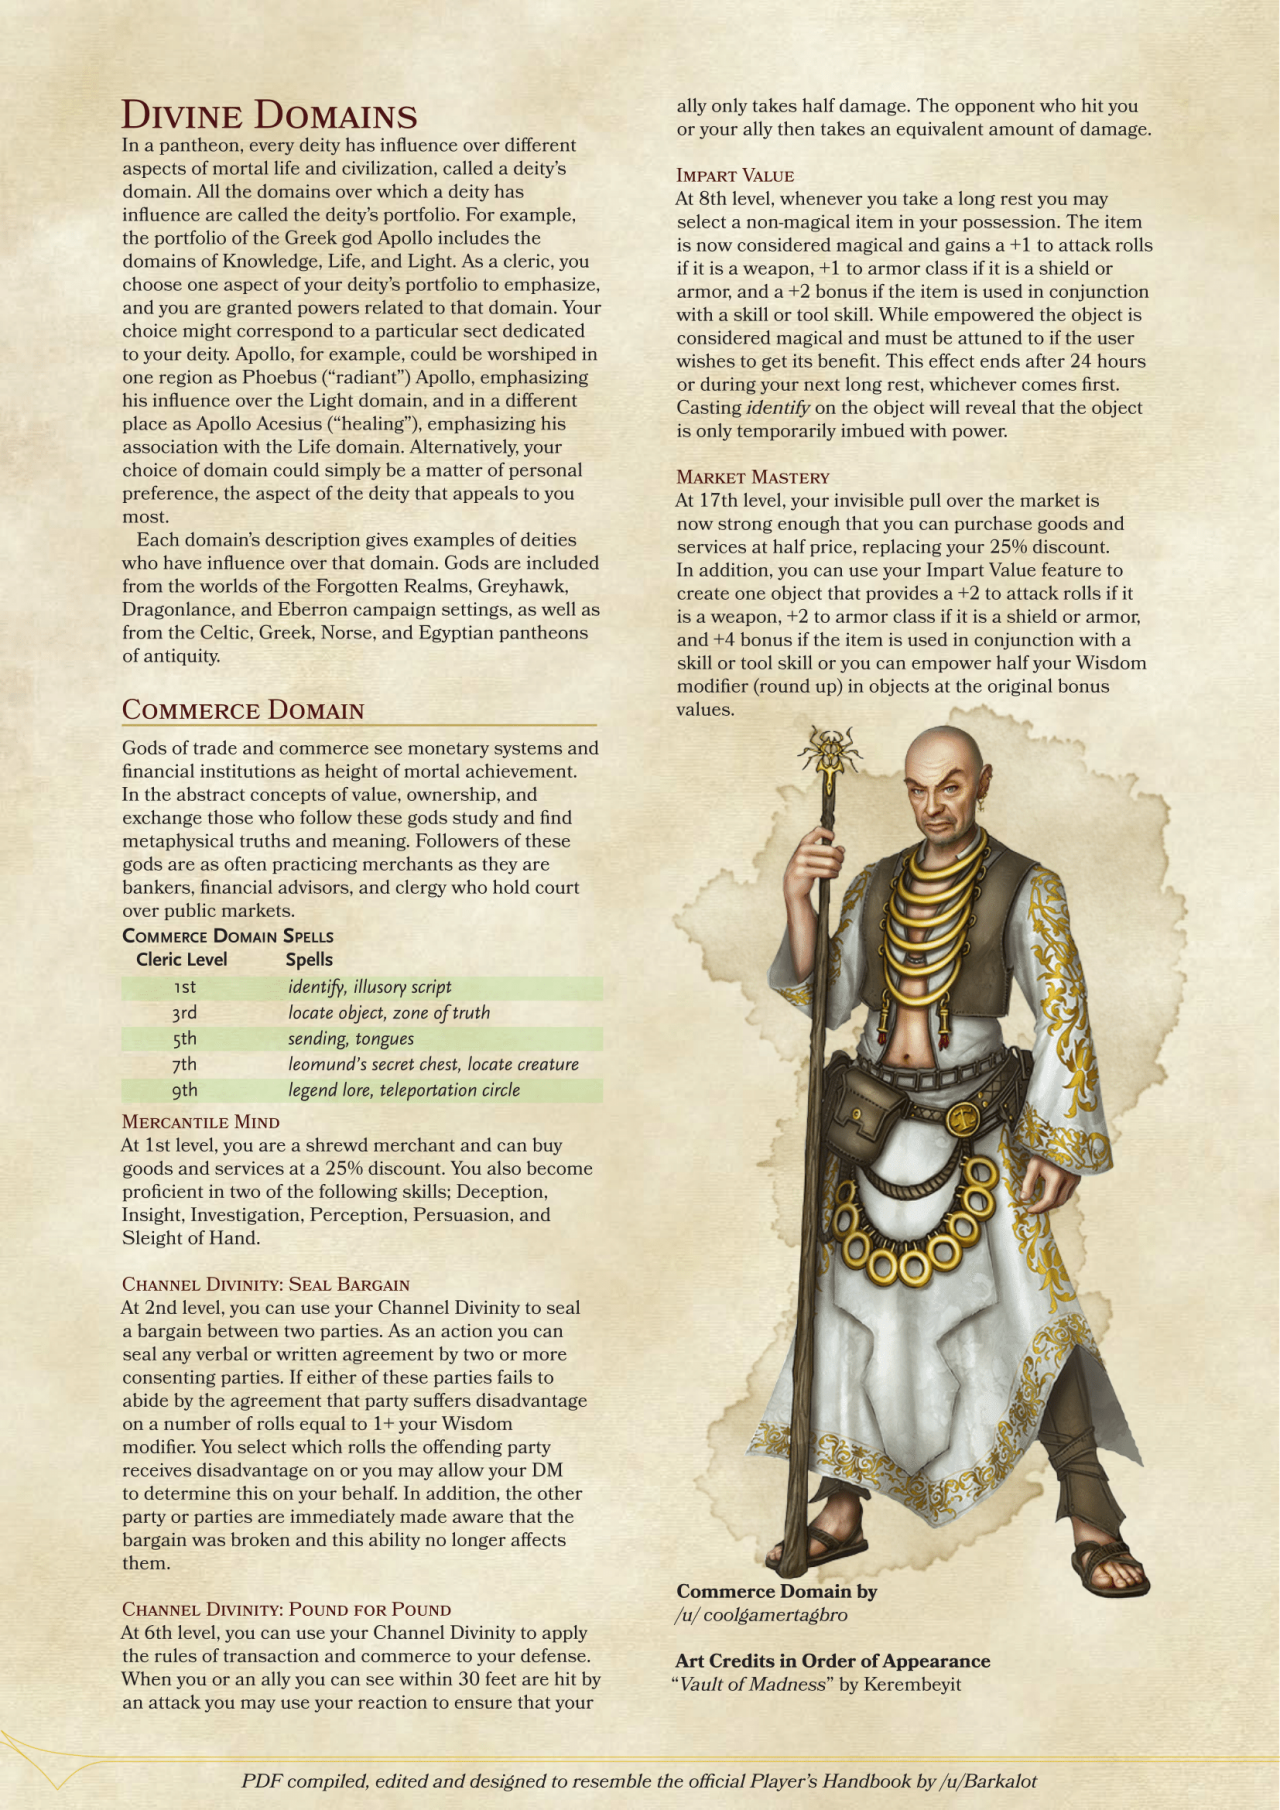 Pin on D&D 5e Homebrew & Aids